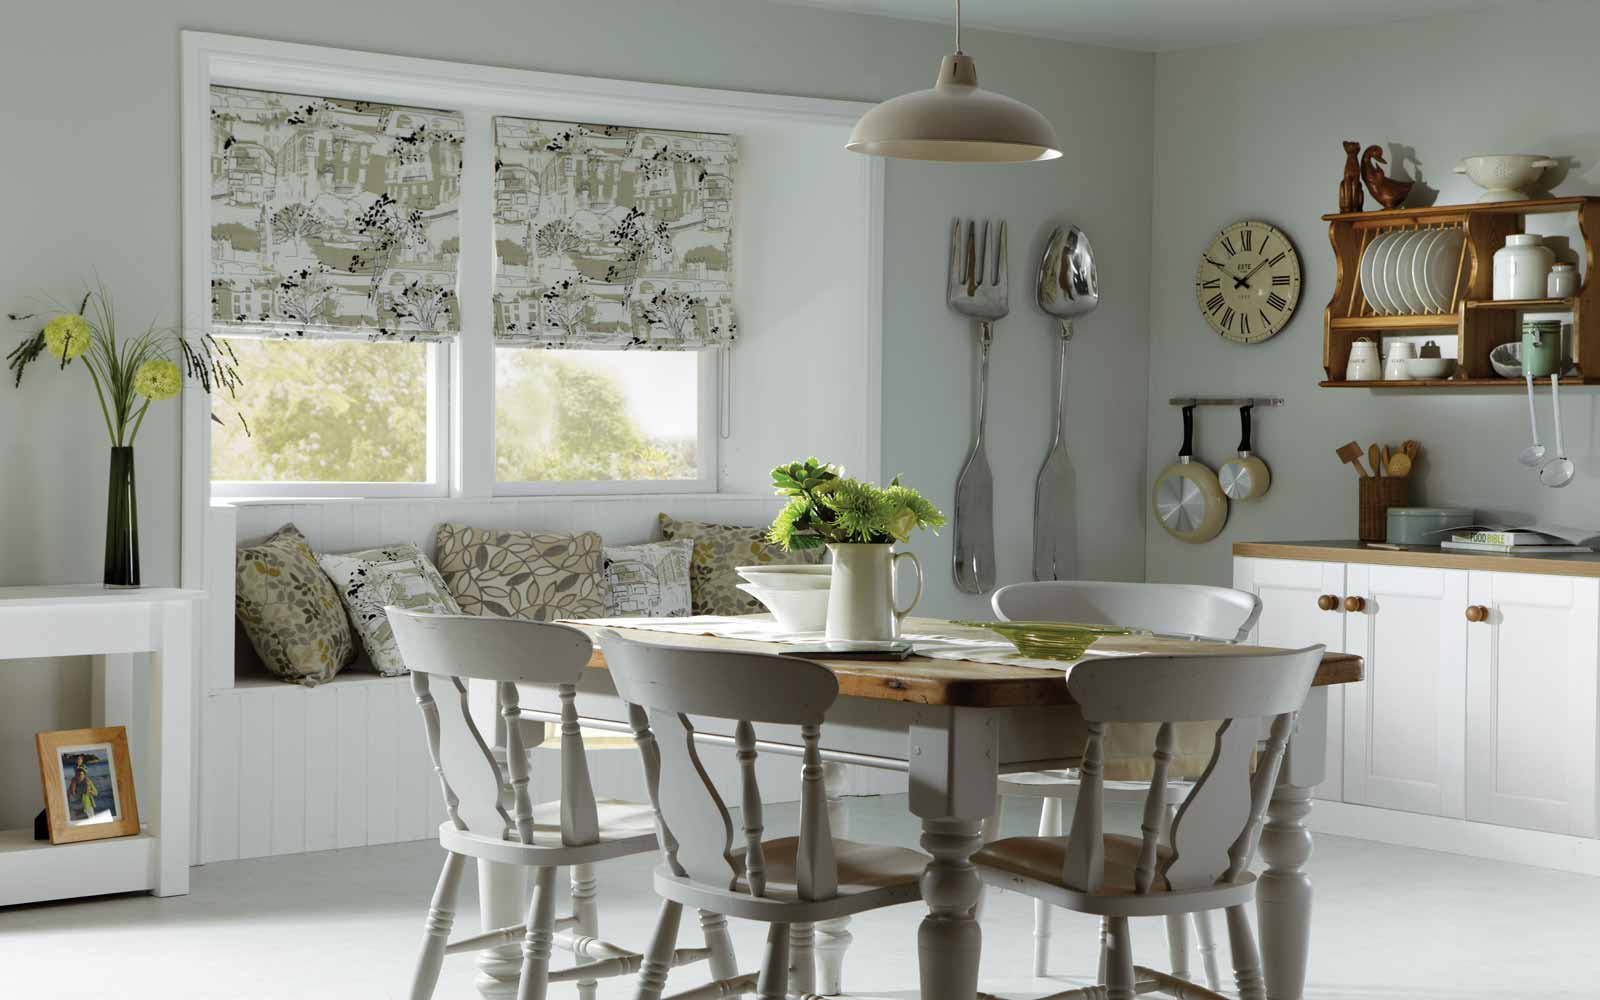 Patterned roman blinds in a kitchen